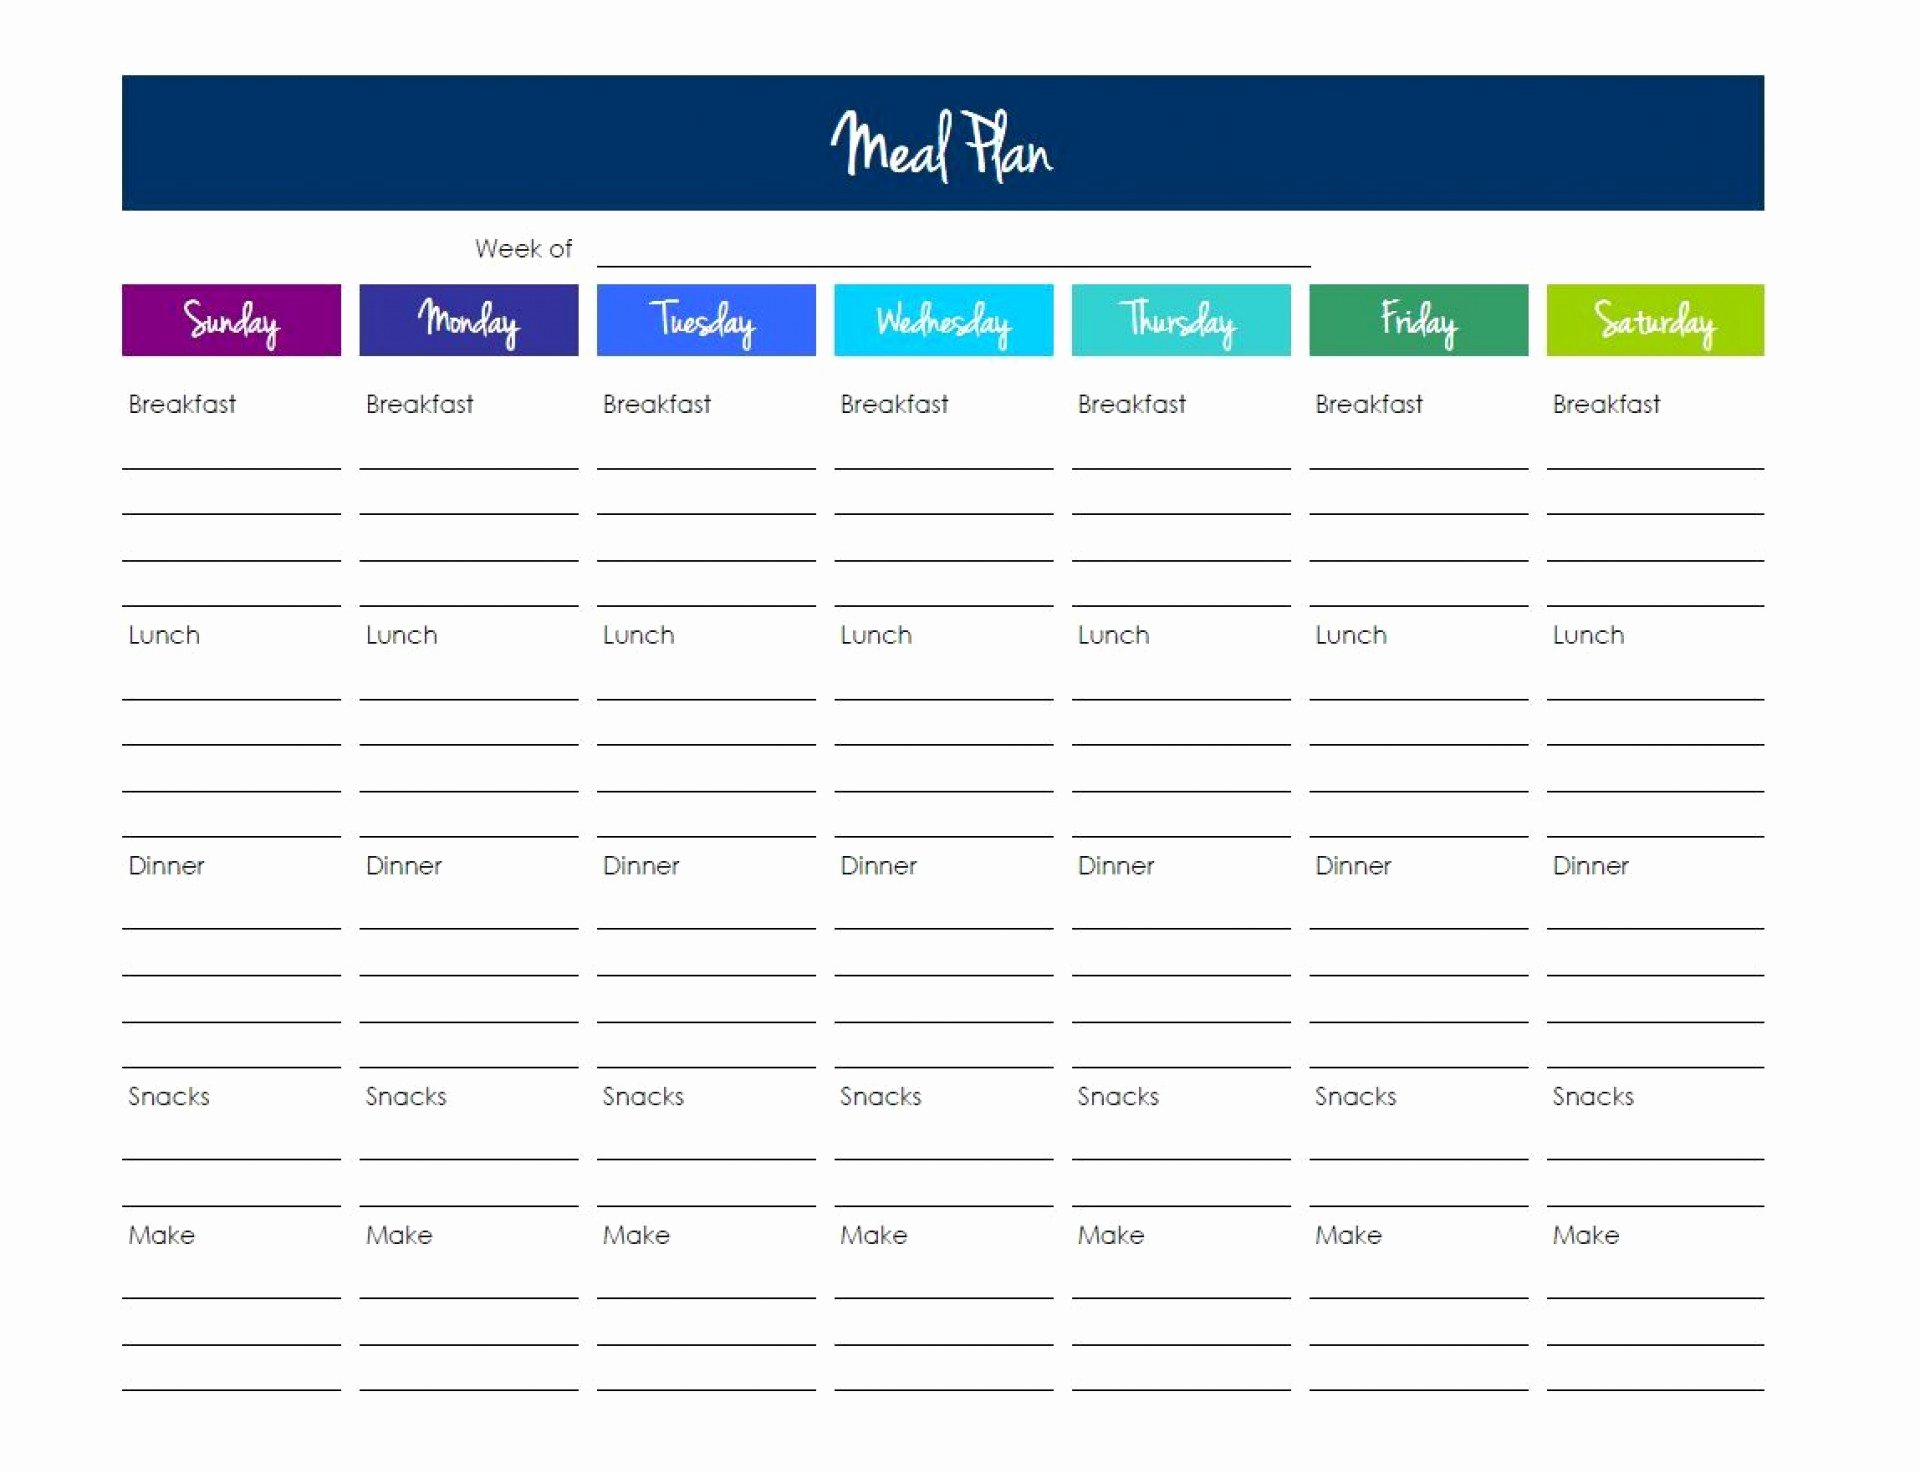 Meal Plan Template Excel Inspirational 016 Day Fix Meal Plan Template Excel Elegant Printable